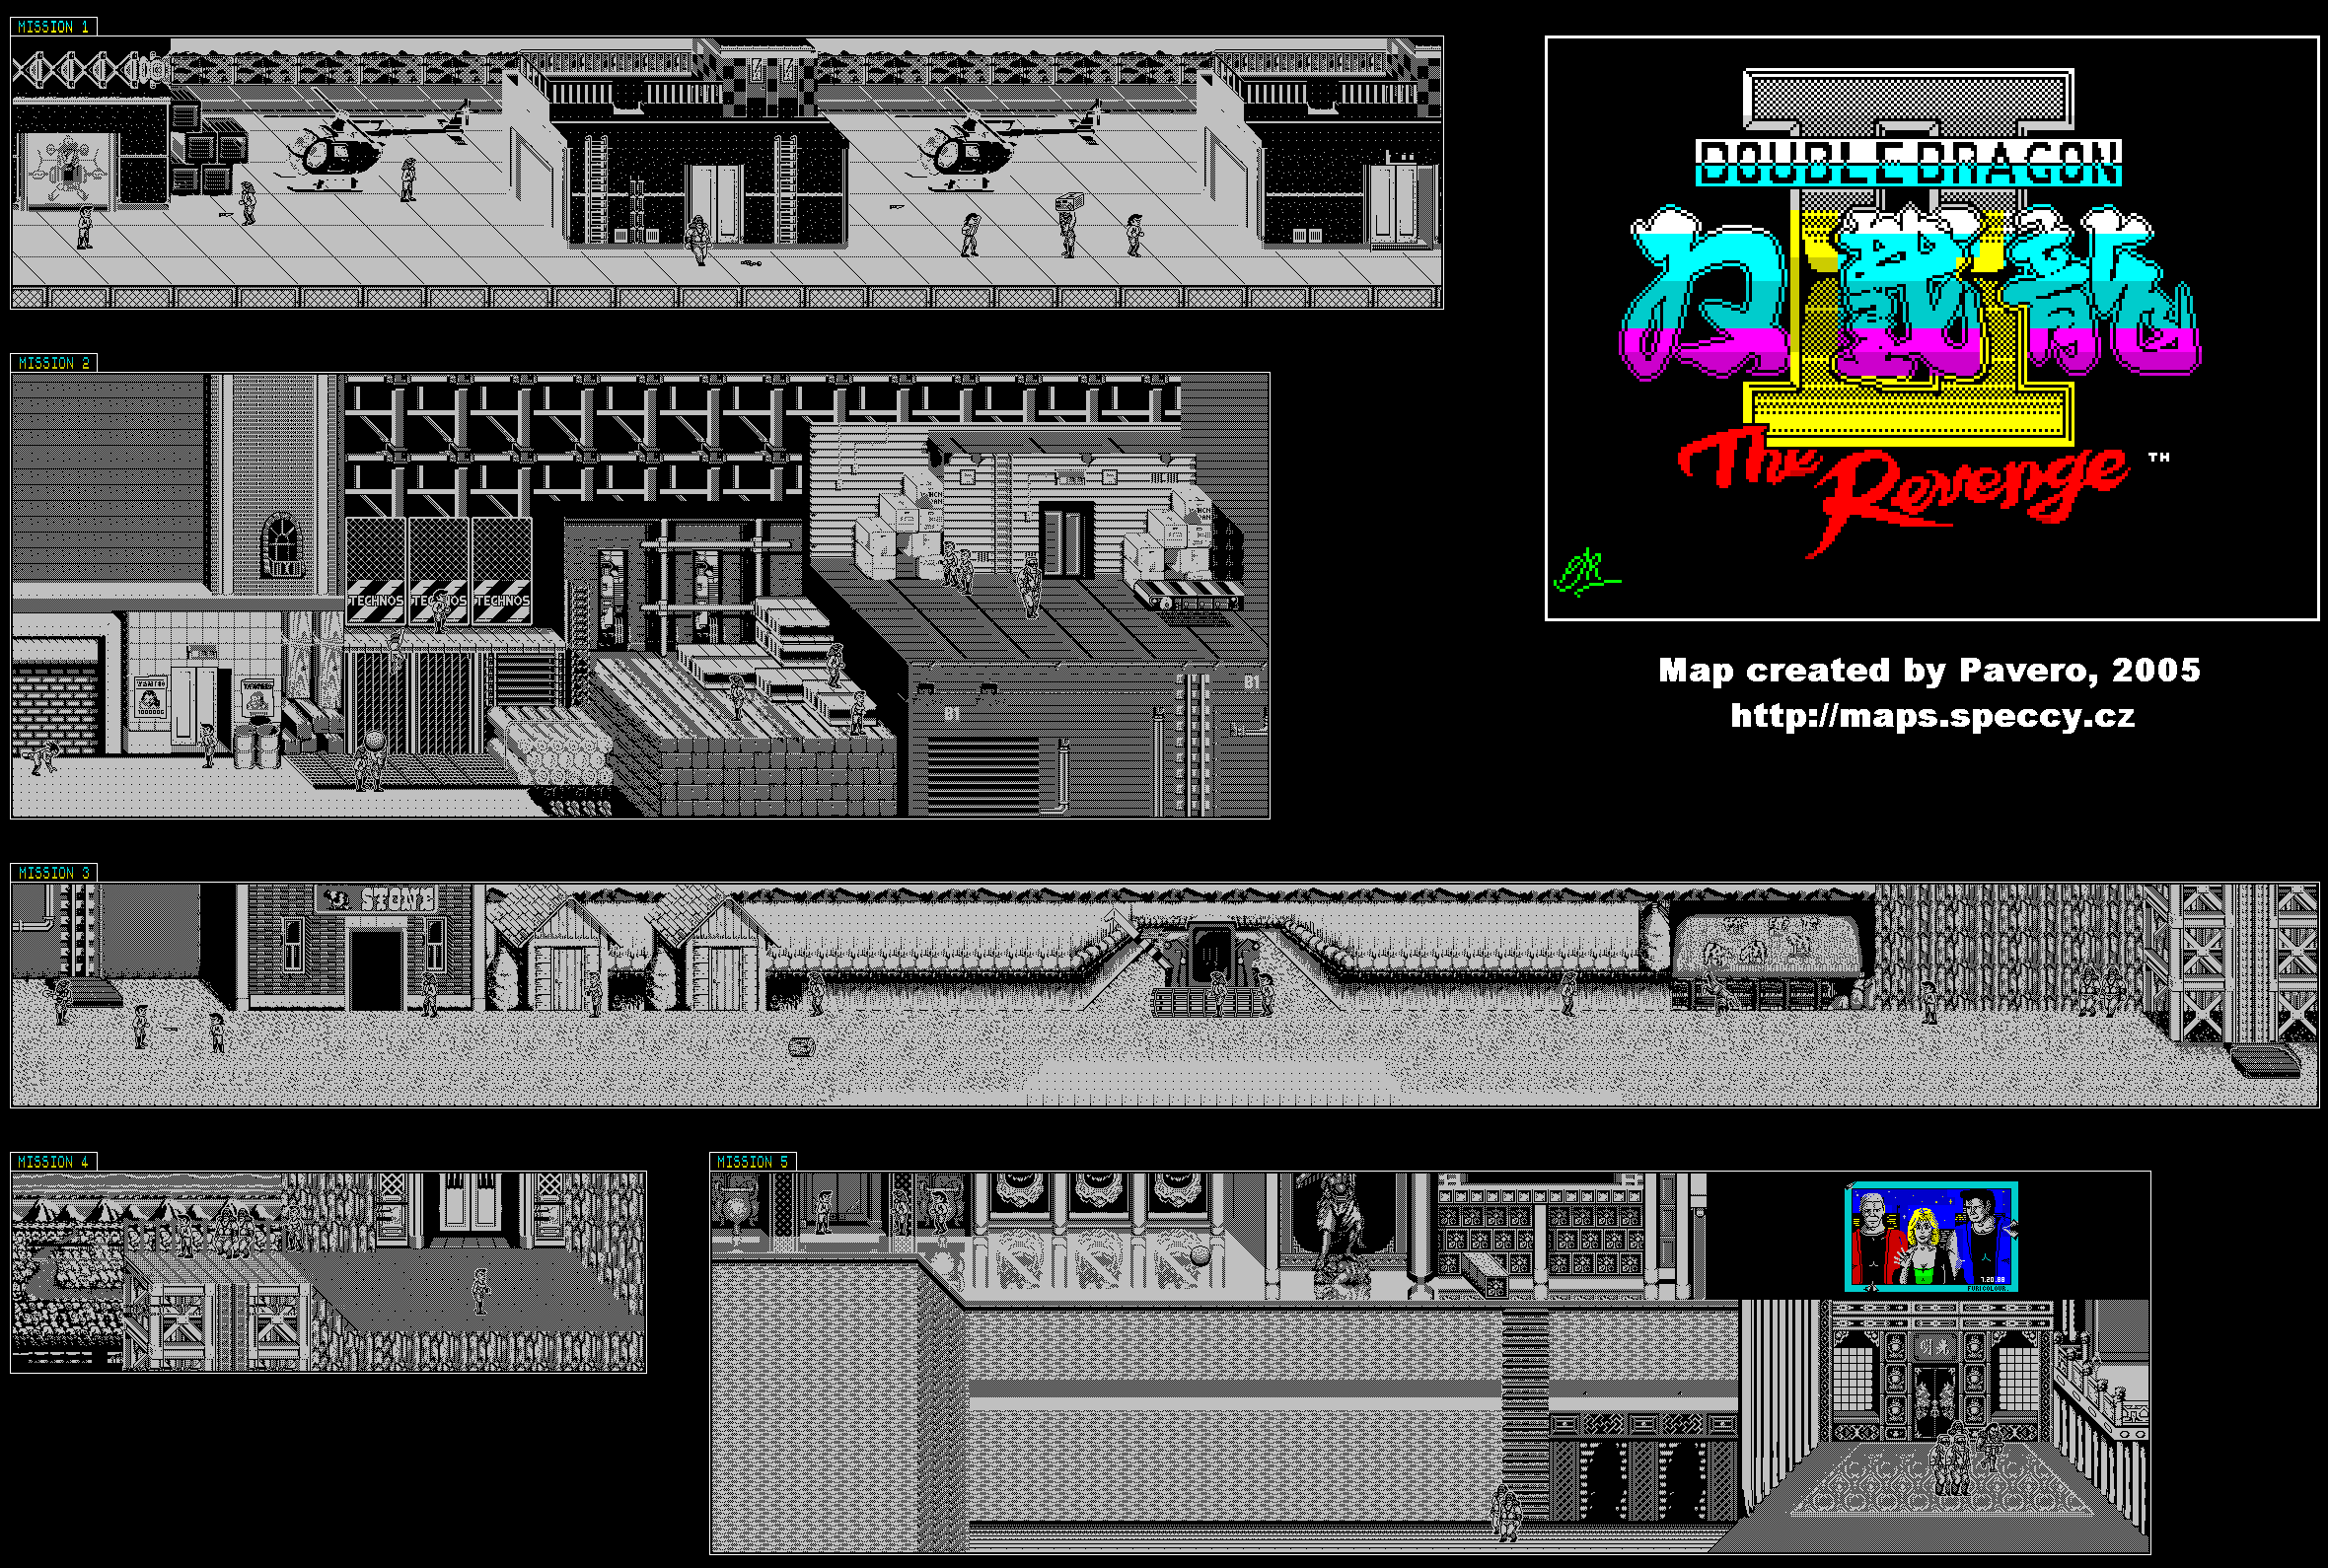 Double Dragon 2 - The Revenge - The Map